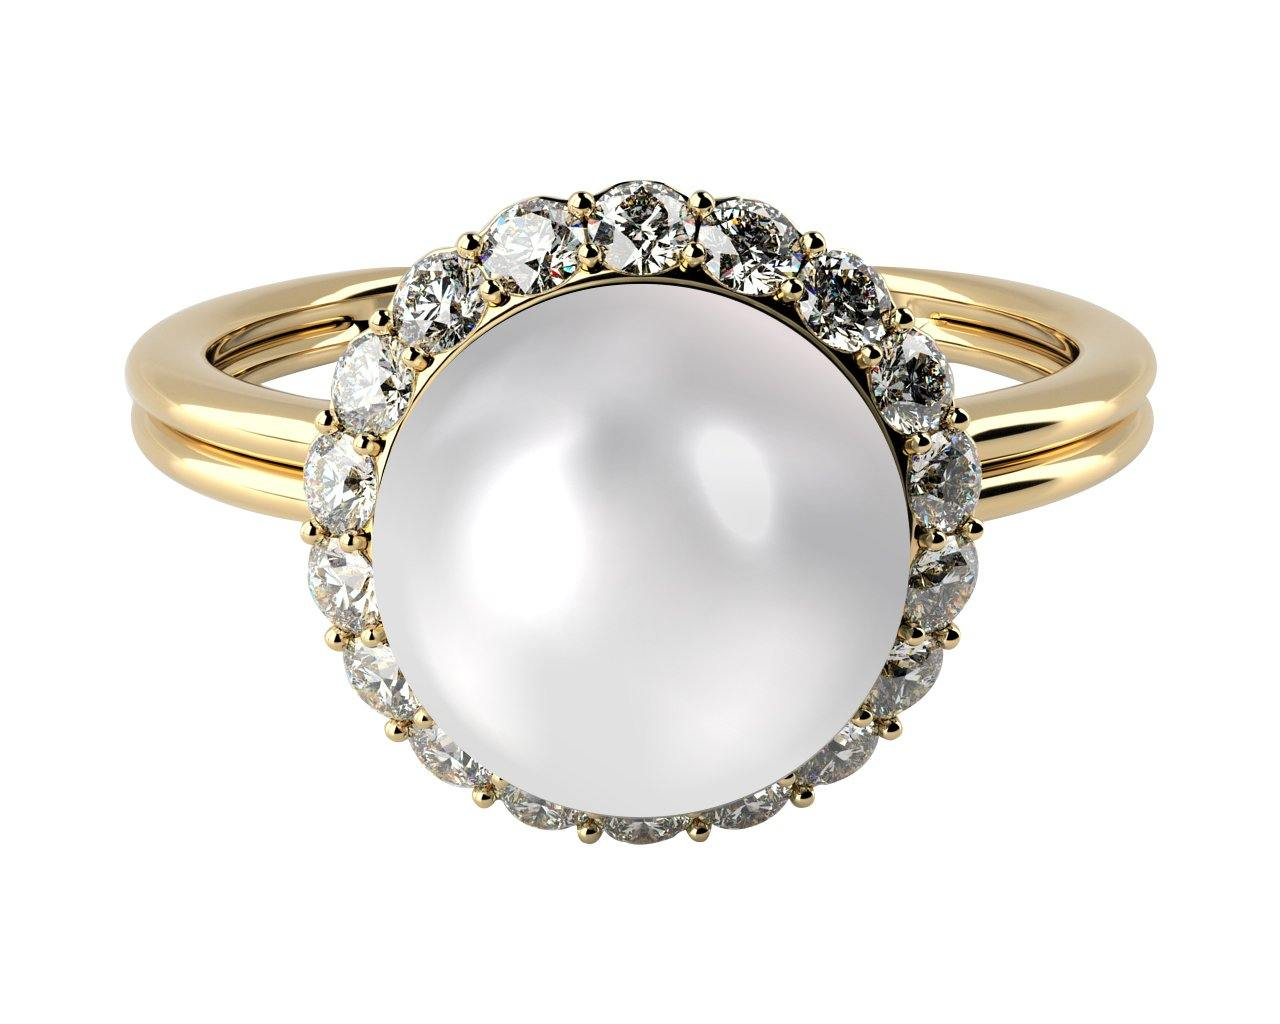 double shank solitaire pearl and diamond ring, solid 14k yellow gold